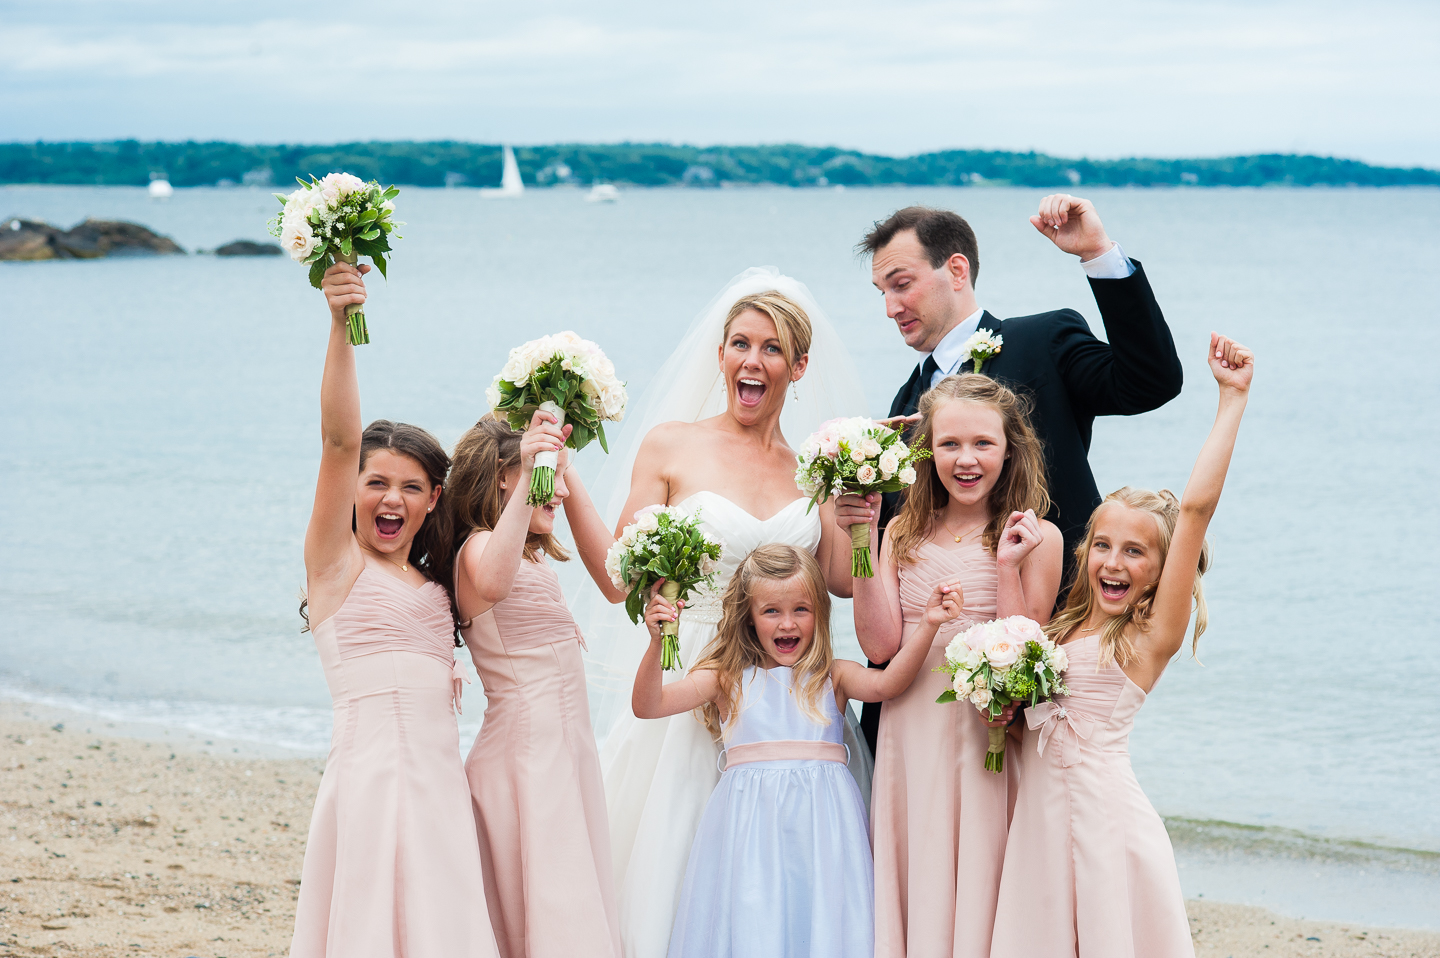 the bride and groom with their adorable jr bridesmaids all cheering